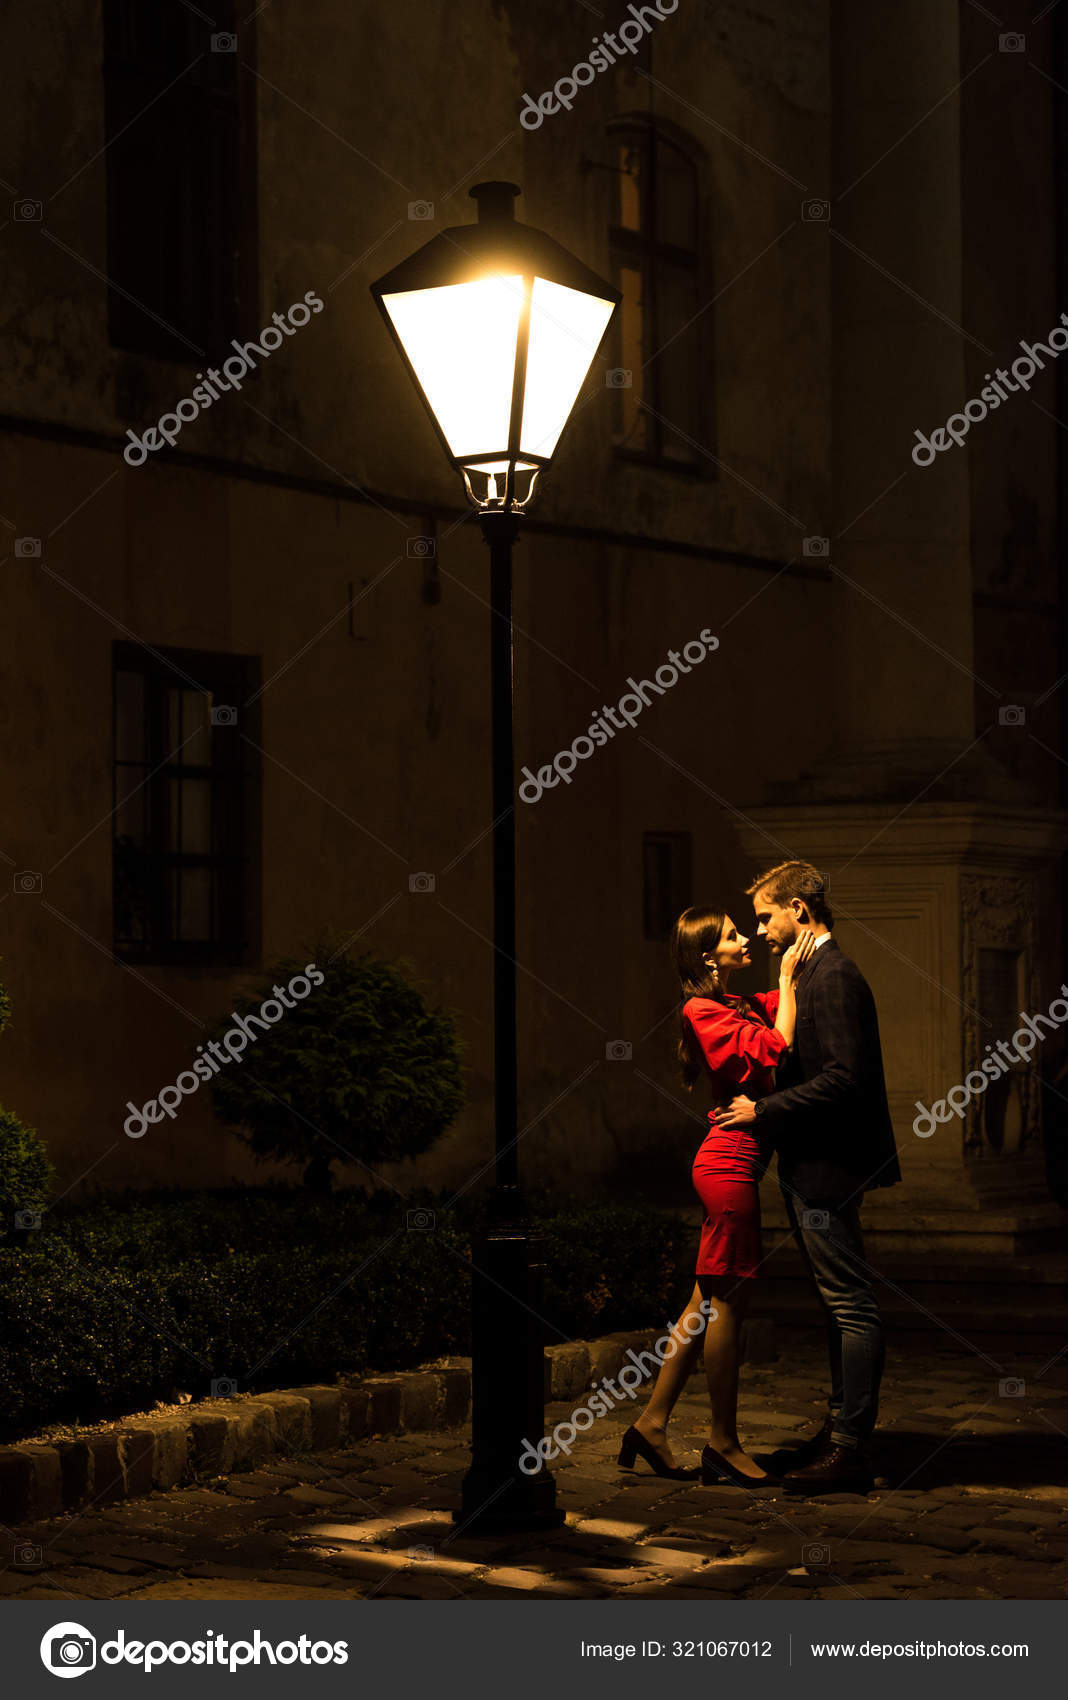 depositphotos_321067012-stock-photo-young-elegant-couple-hugging-while